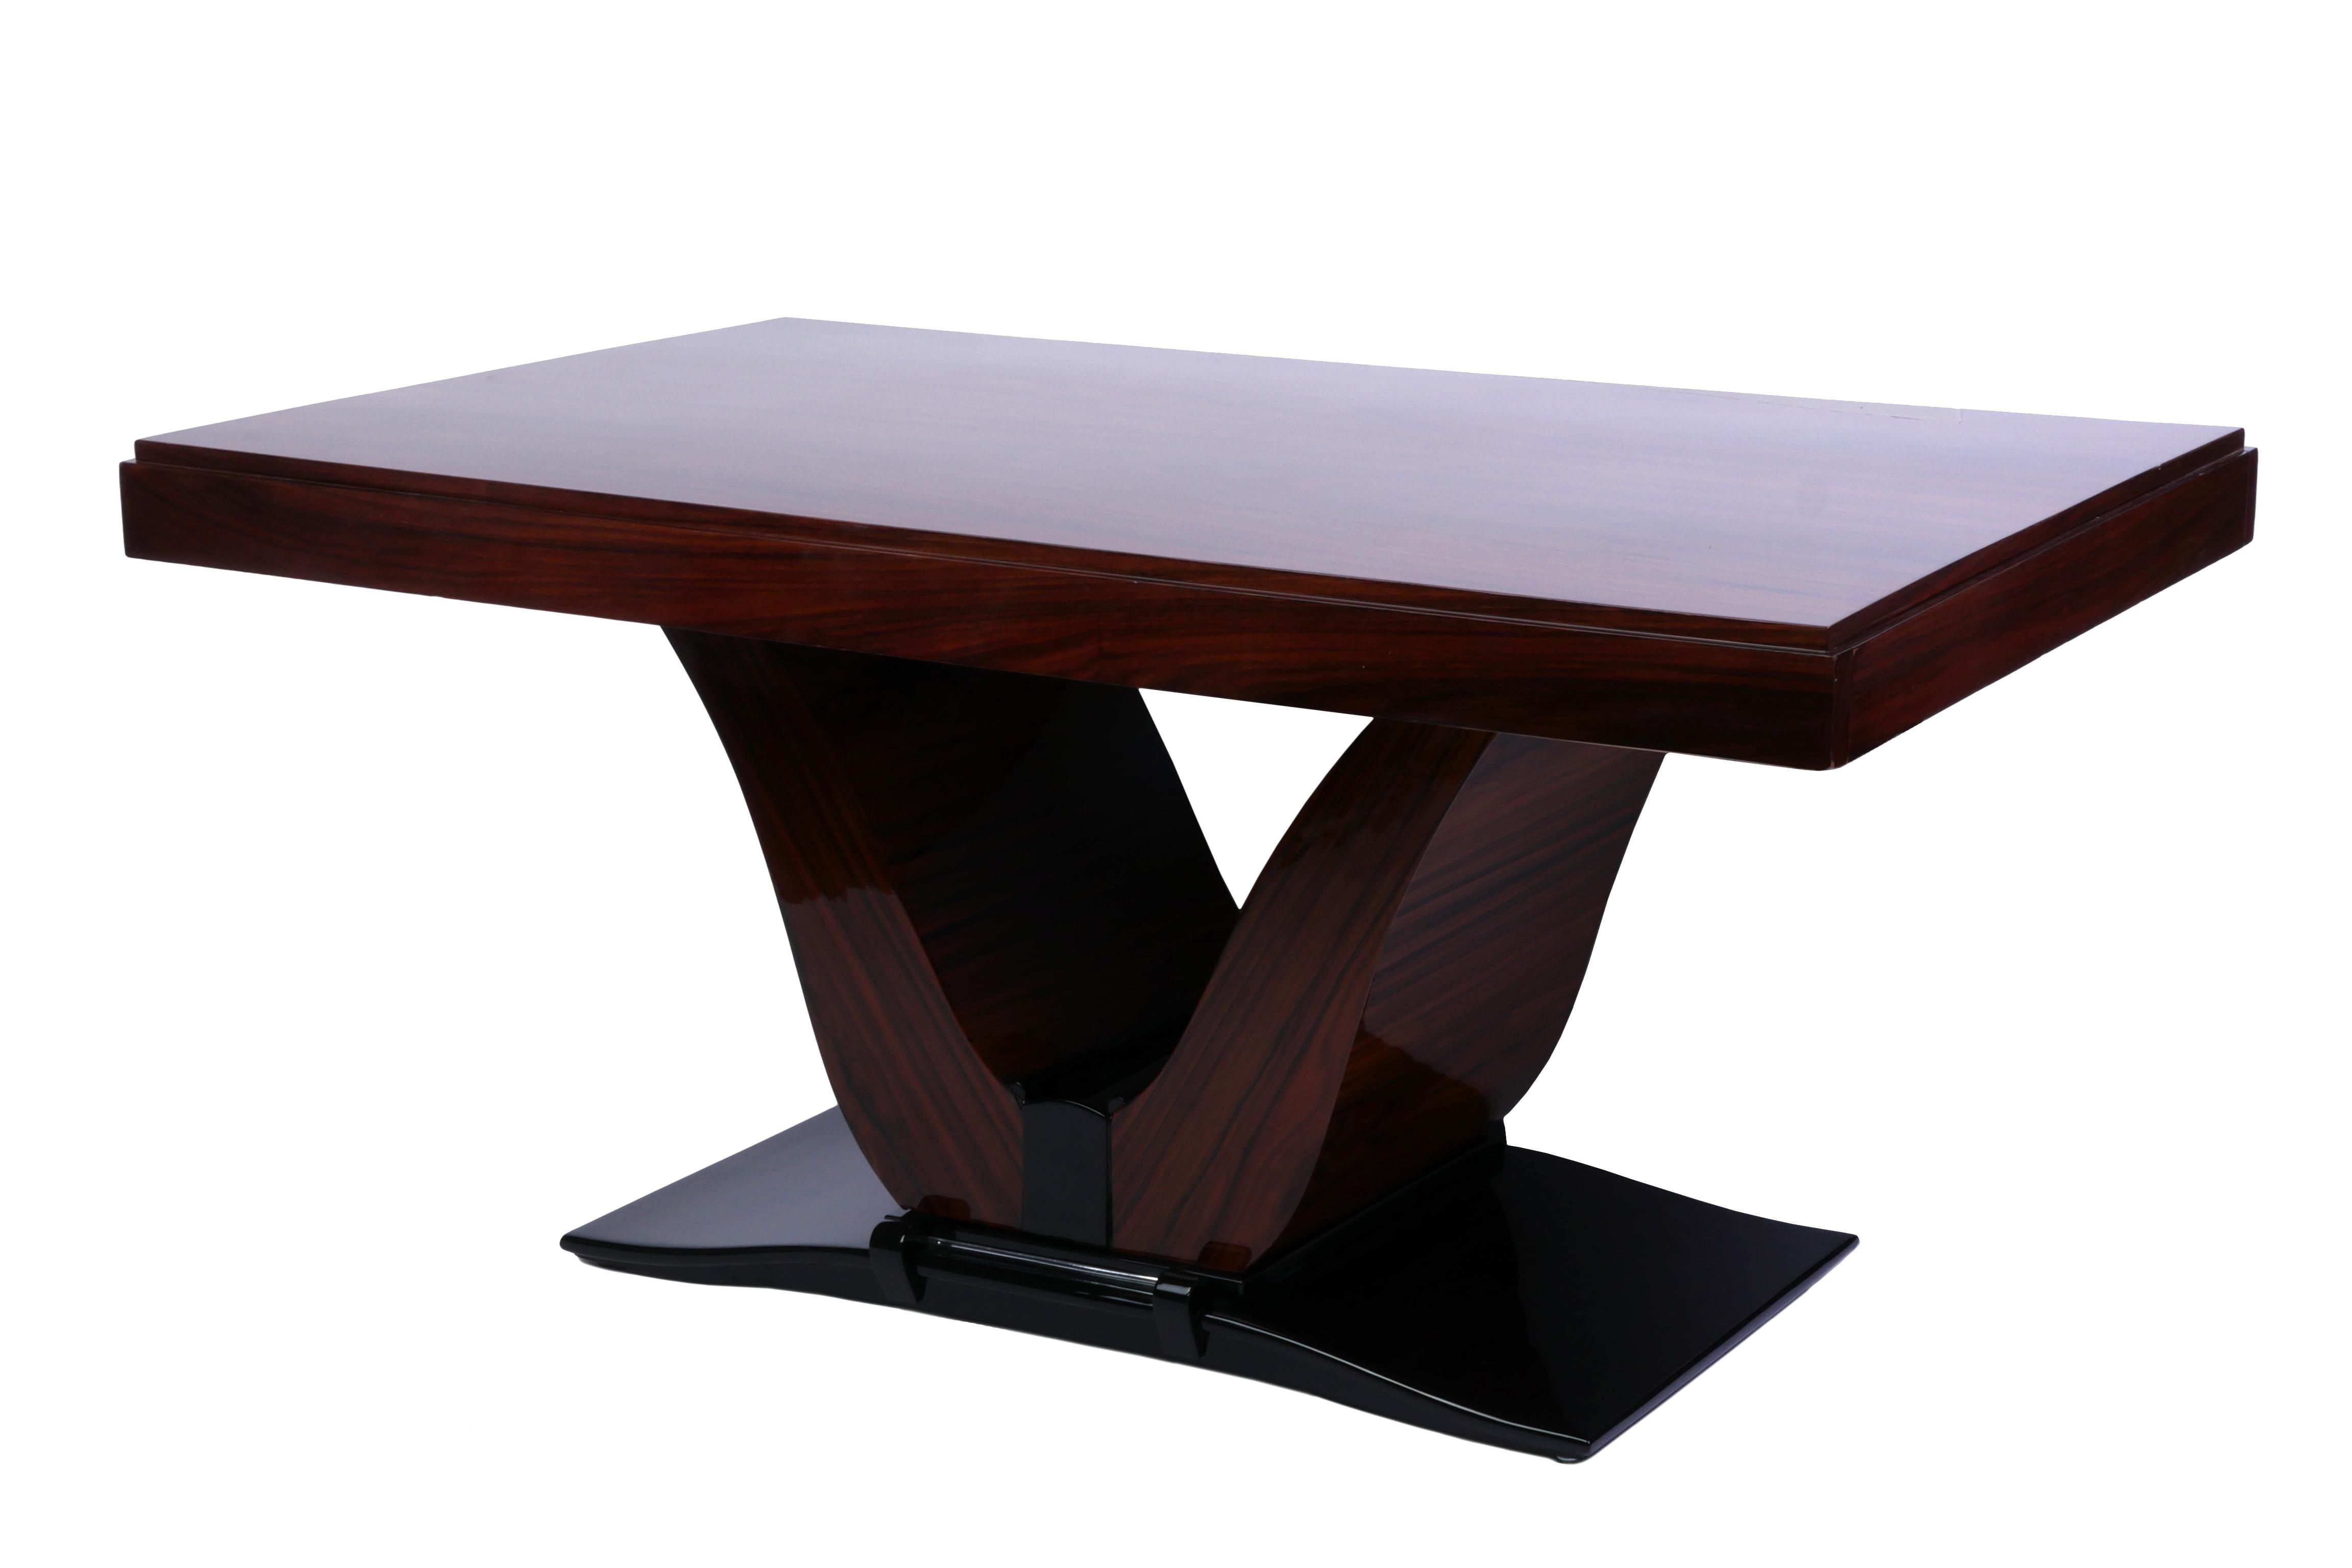 French Art Deco Rosewood Dining Table Art Deco Furniture Dining